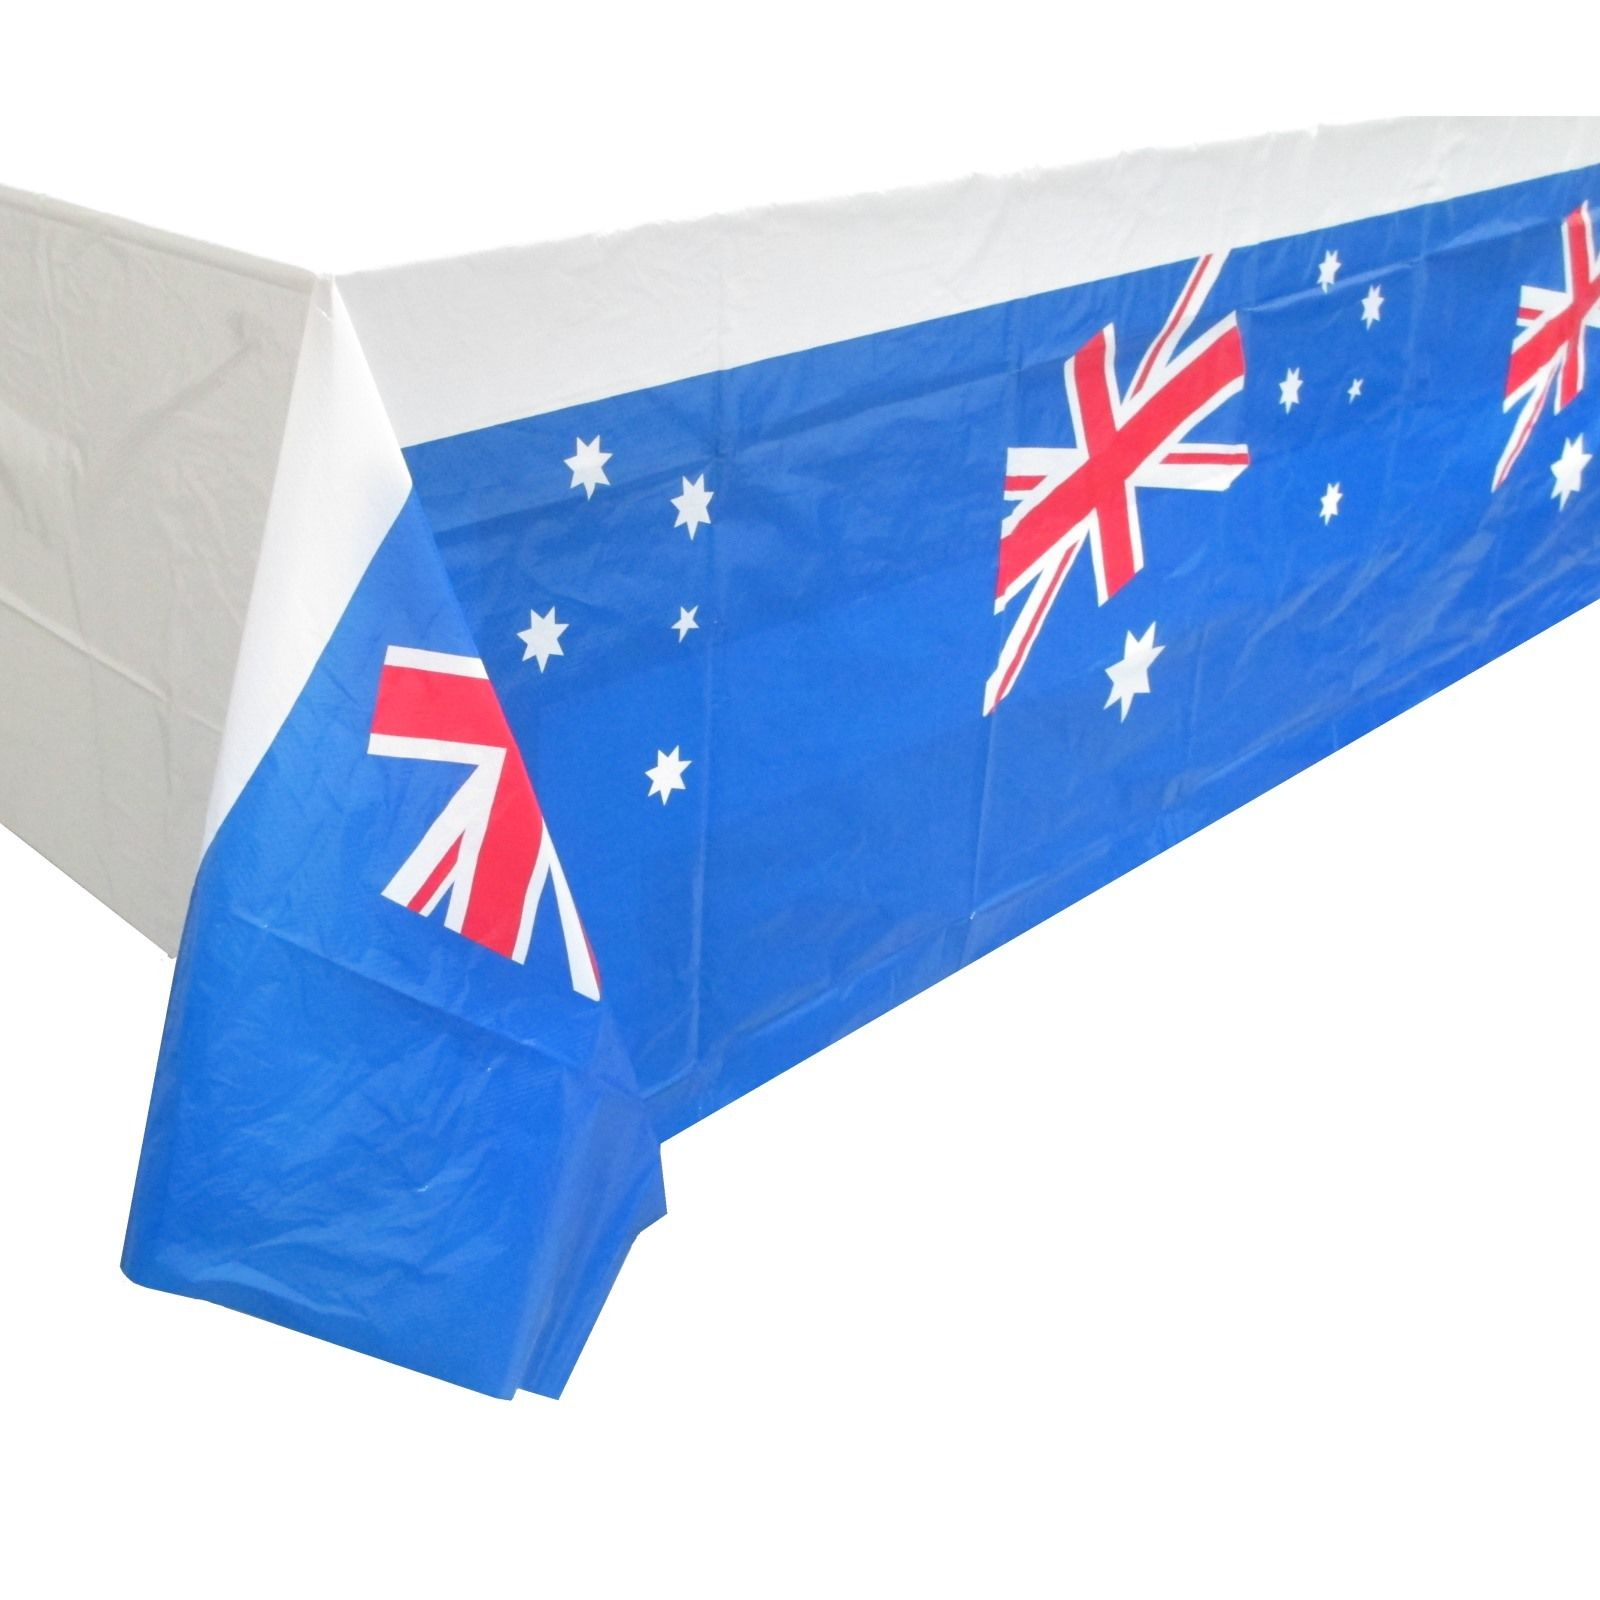 AUSTRALIAN FLAG TABLE COVER